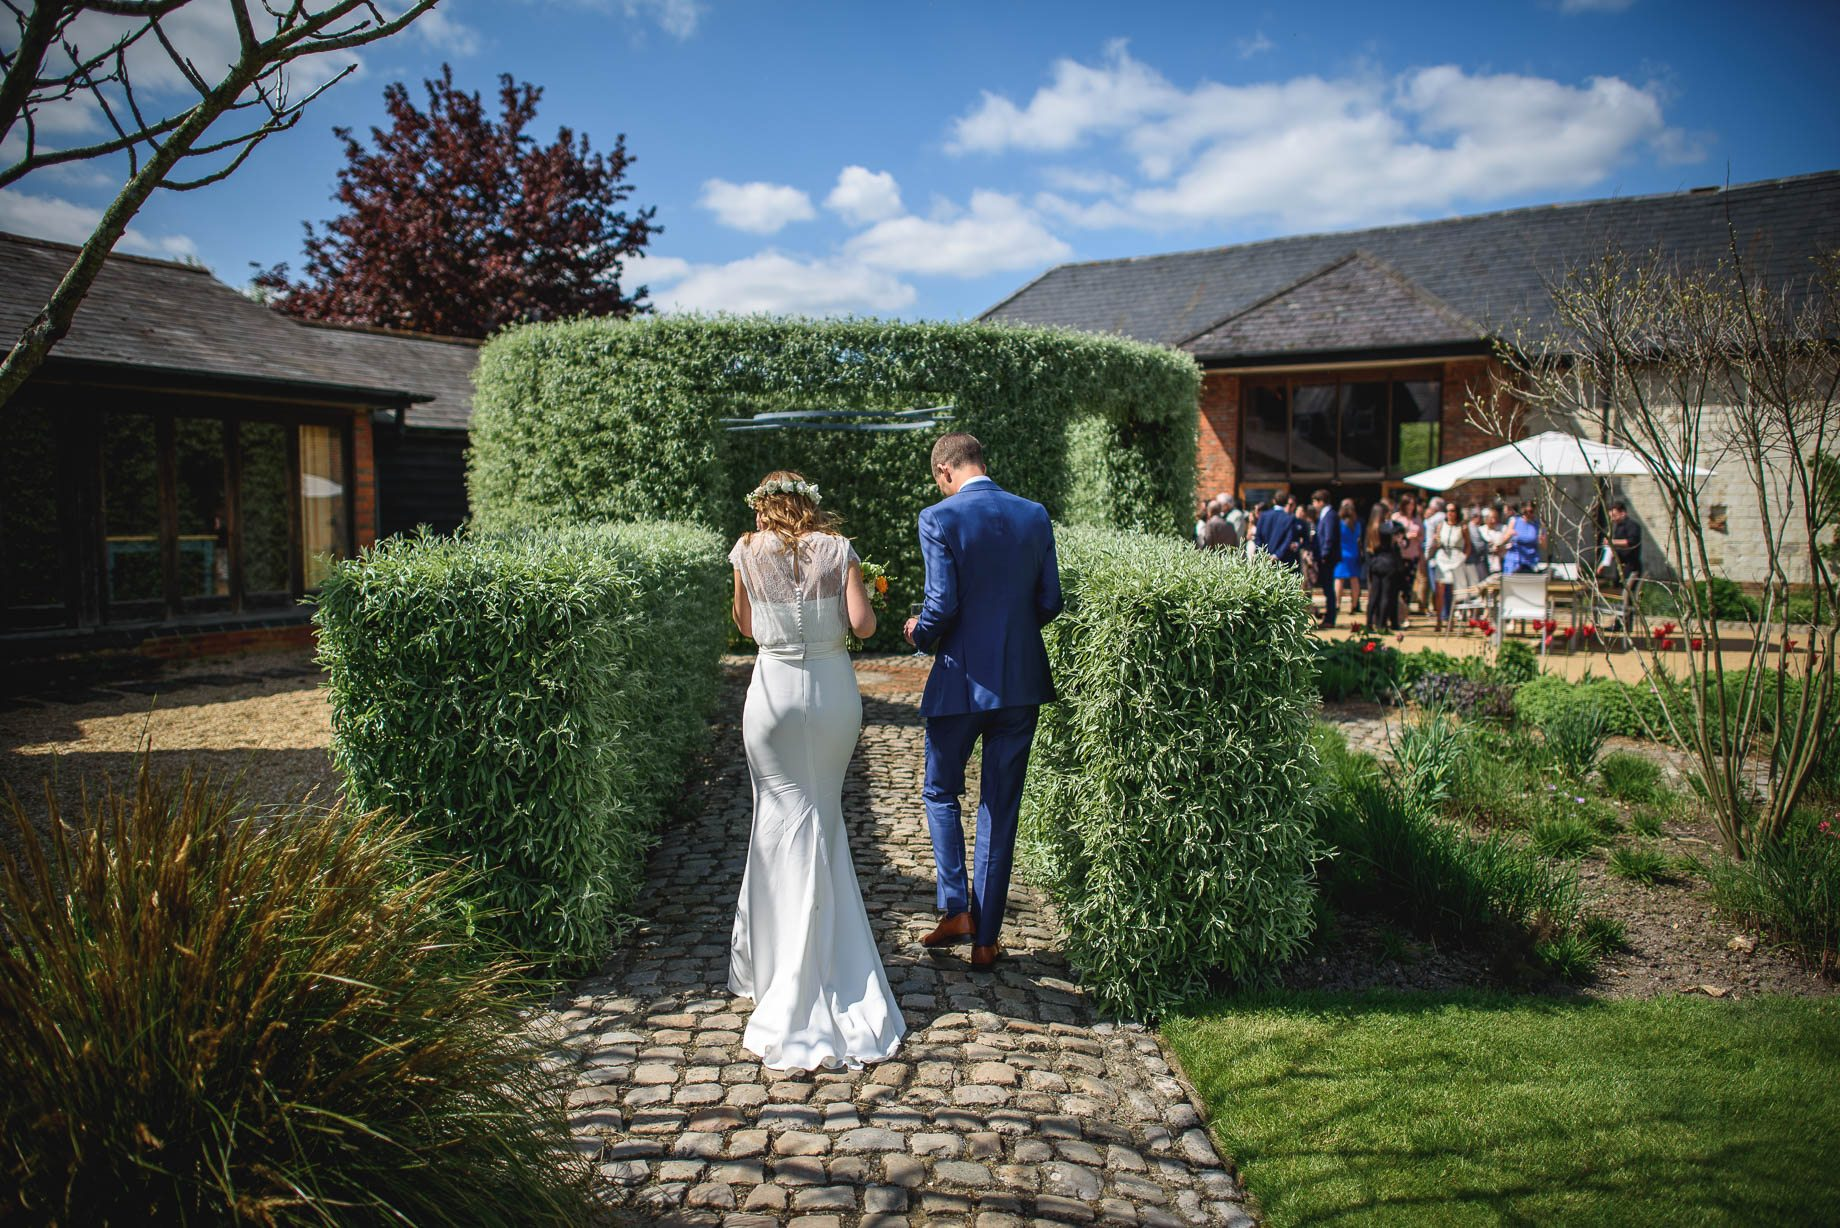 Bury Court Barn wedding photography by Guy Collier - Jo and Jamie (75 of 160)